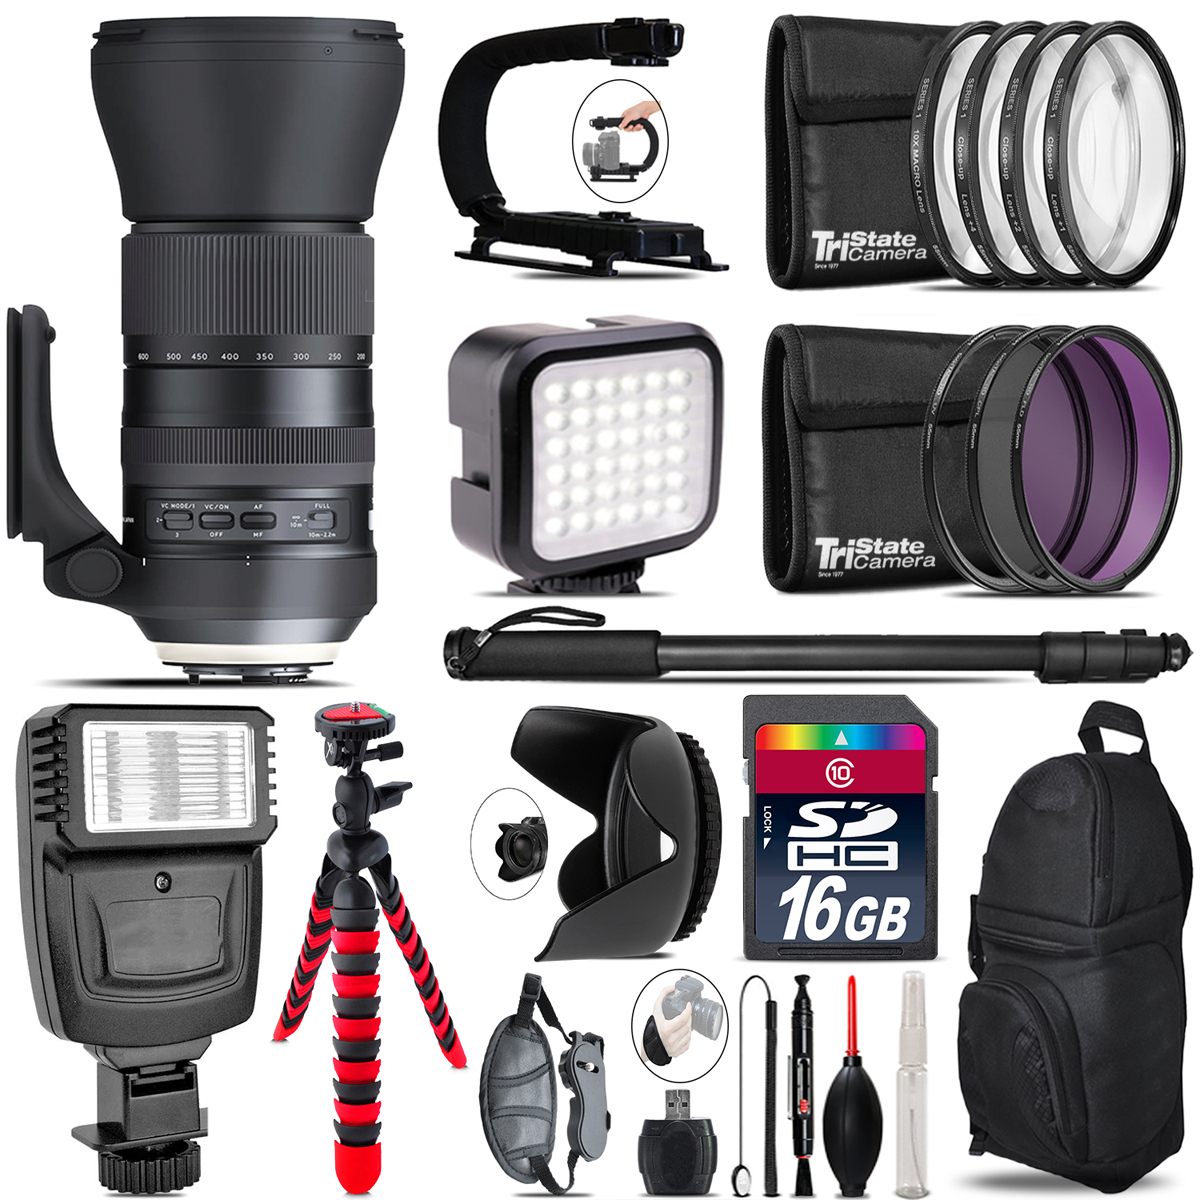 Tamron 150-600mm G2 for Canon - Video Kit + Flash - 16GB Accessory Bundle *FREE SHIPPING*